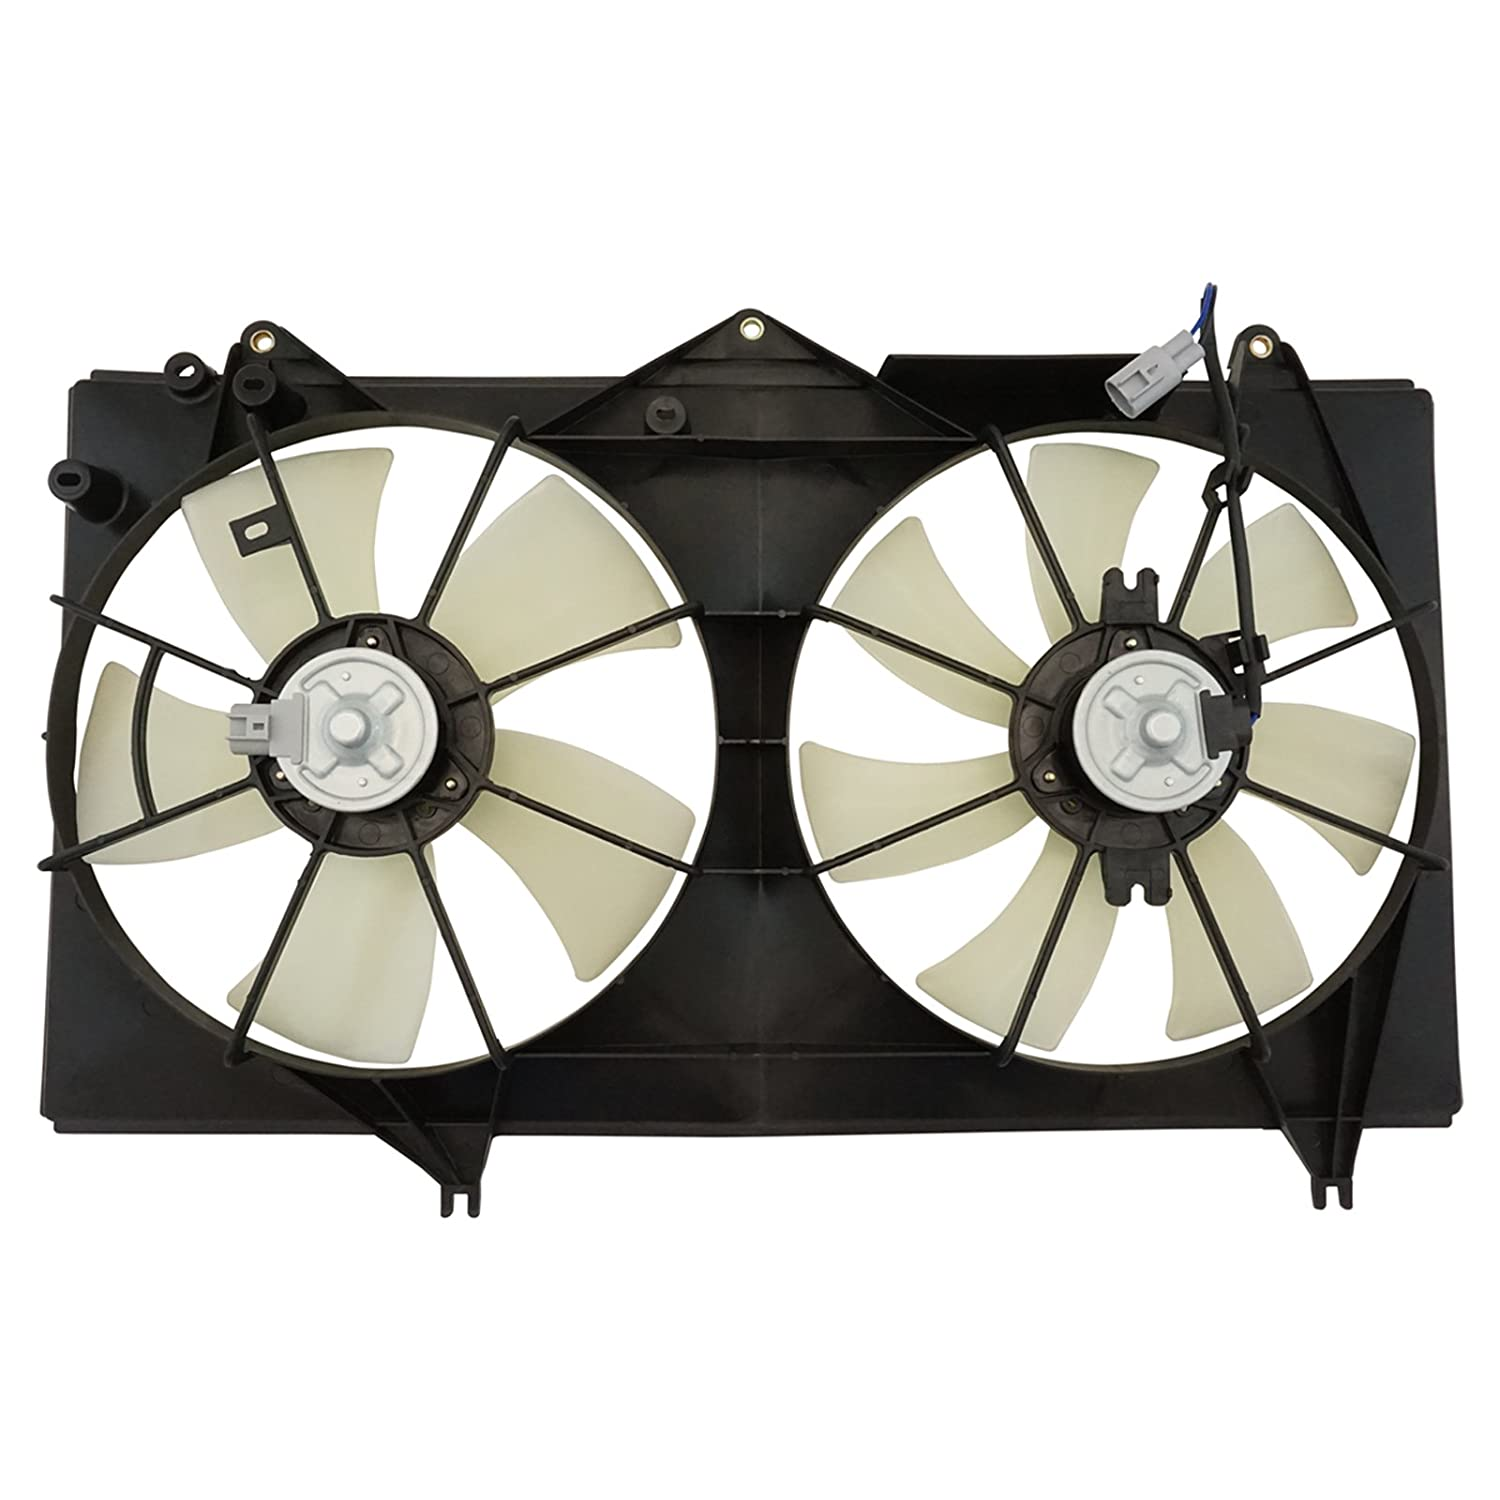 Dual Radiator AC Cooling Fan w//Motor for Toyota Camry Solara 2.4L